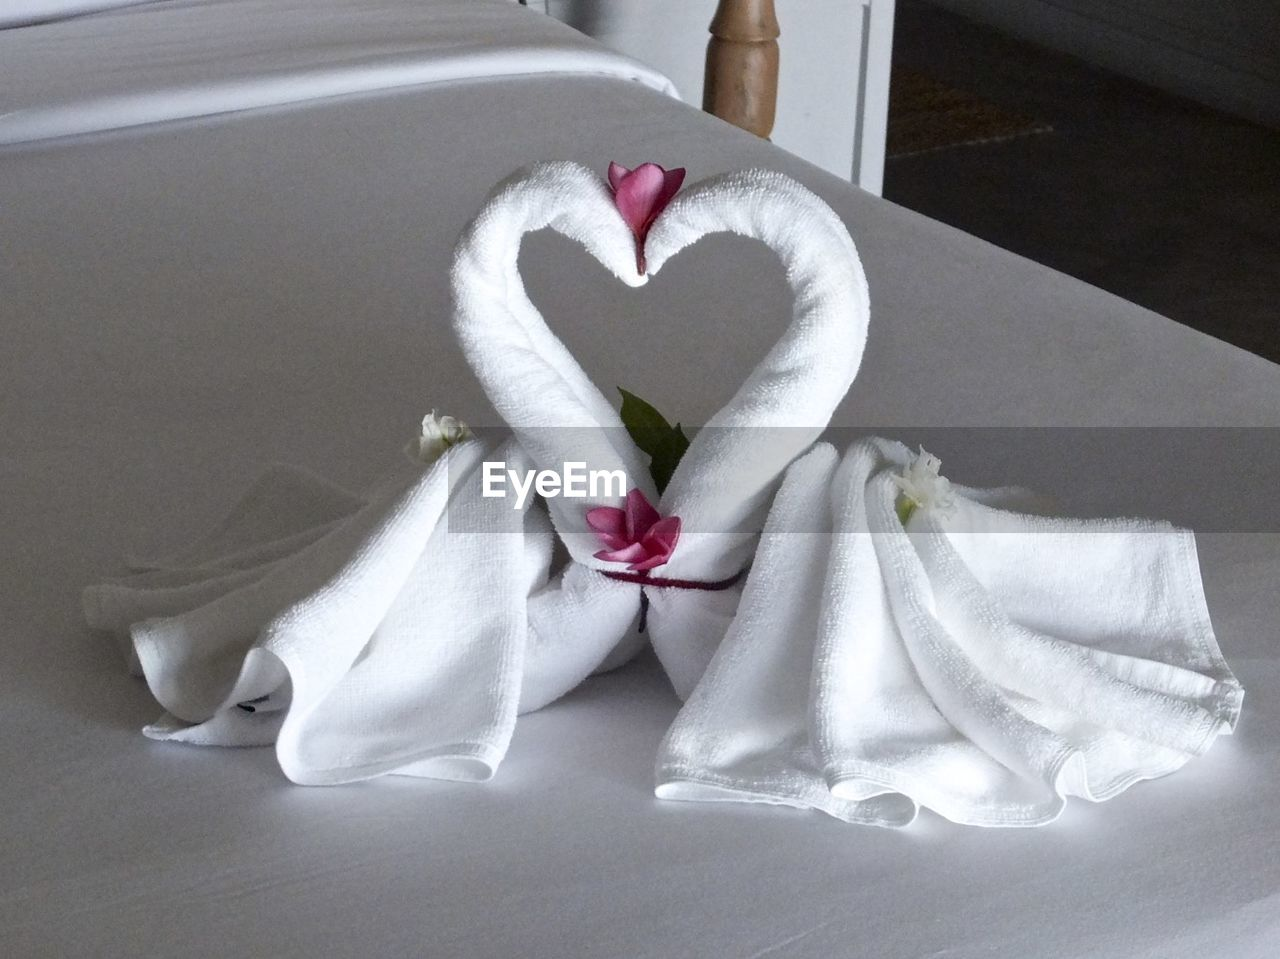 Swan made of white fabric in heart shape on bed